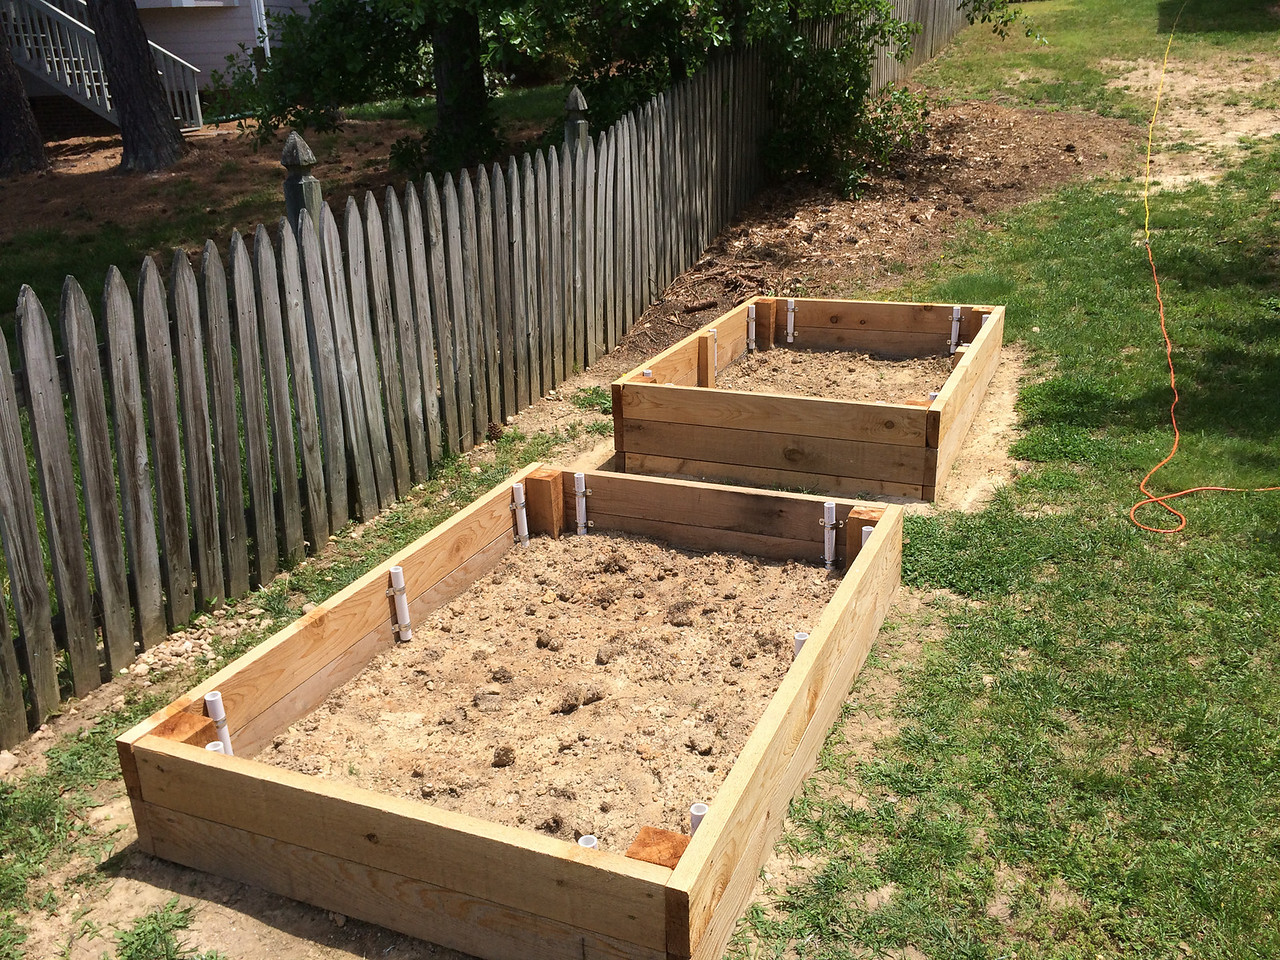 After finishing the PVC sections in both beds. Now they're ready for filling with garden soil. It has been weeks getting to this point. Projects move slowly when there's a toddler in the house. Not knowing what you're doing  doesn't help, but I'm blaming the kid. ;)